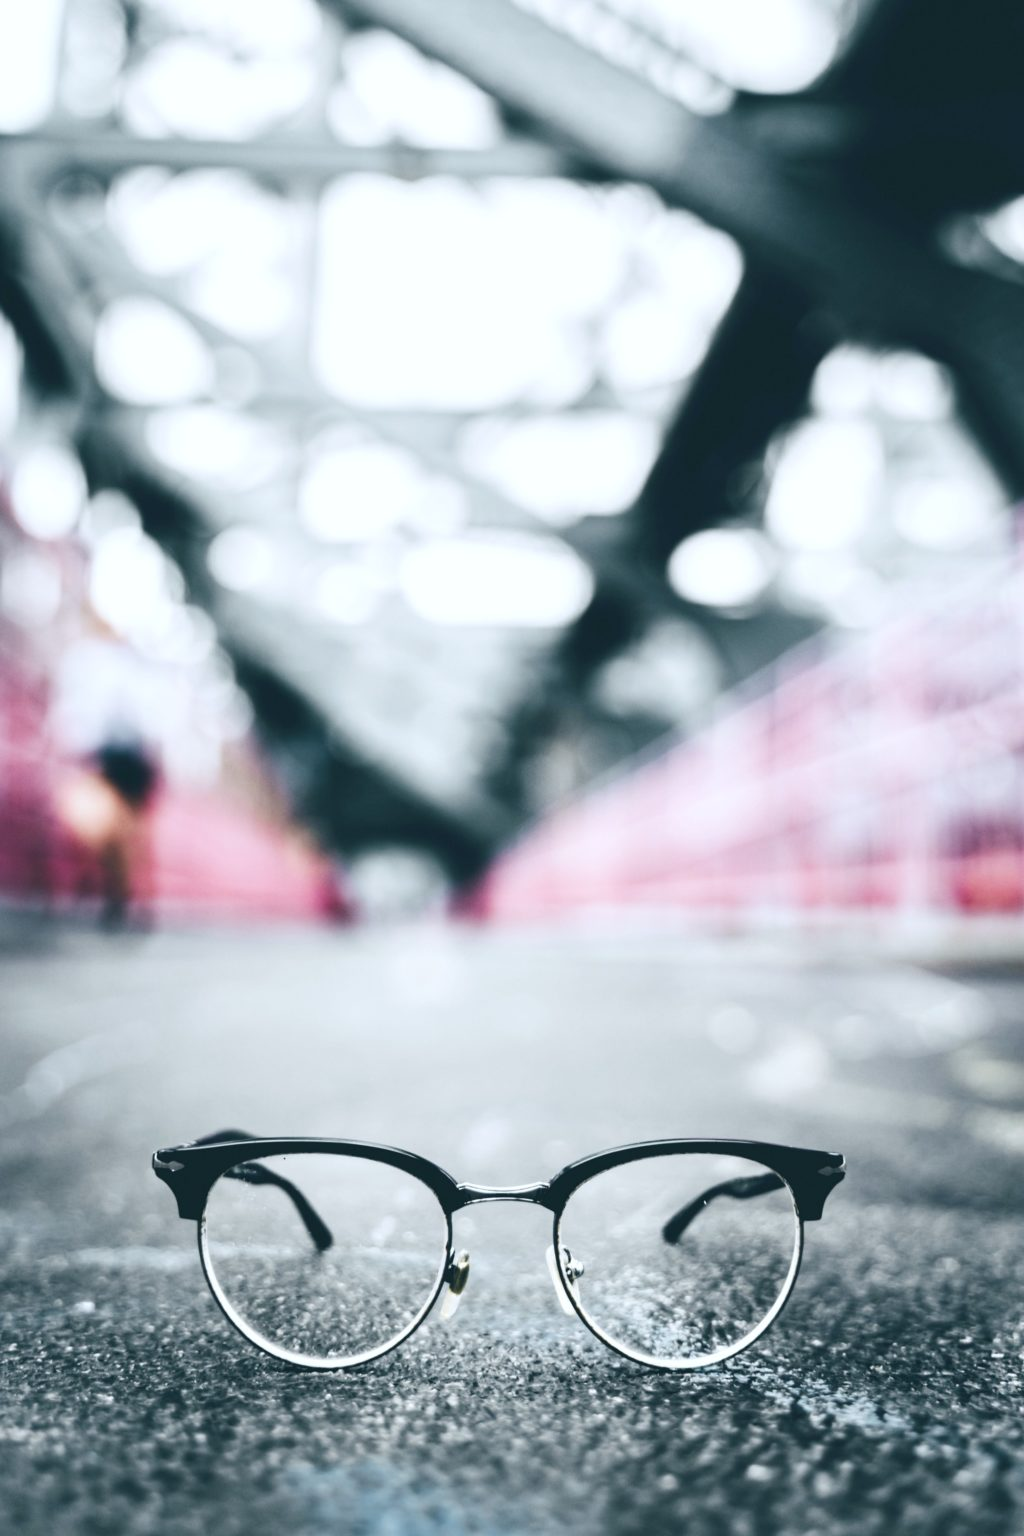 An artistic picture of Wayfarer glasses in an urban setting. They are on the concrete and looks like a blurred subway station in the back.